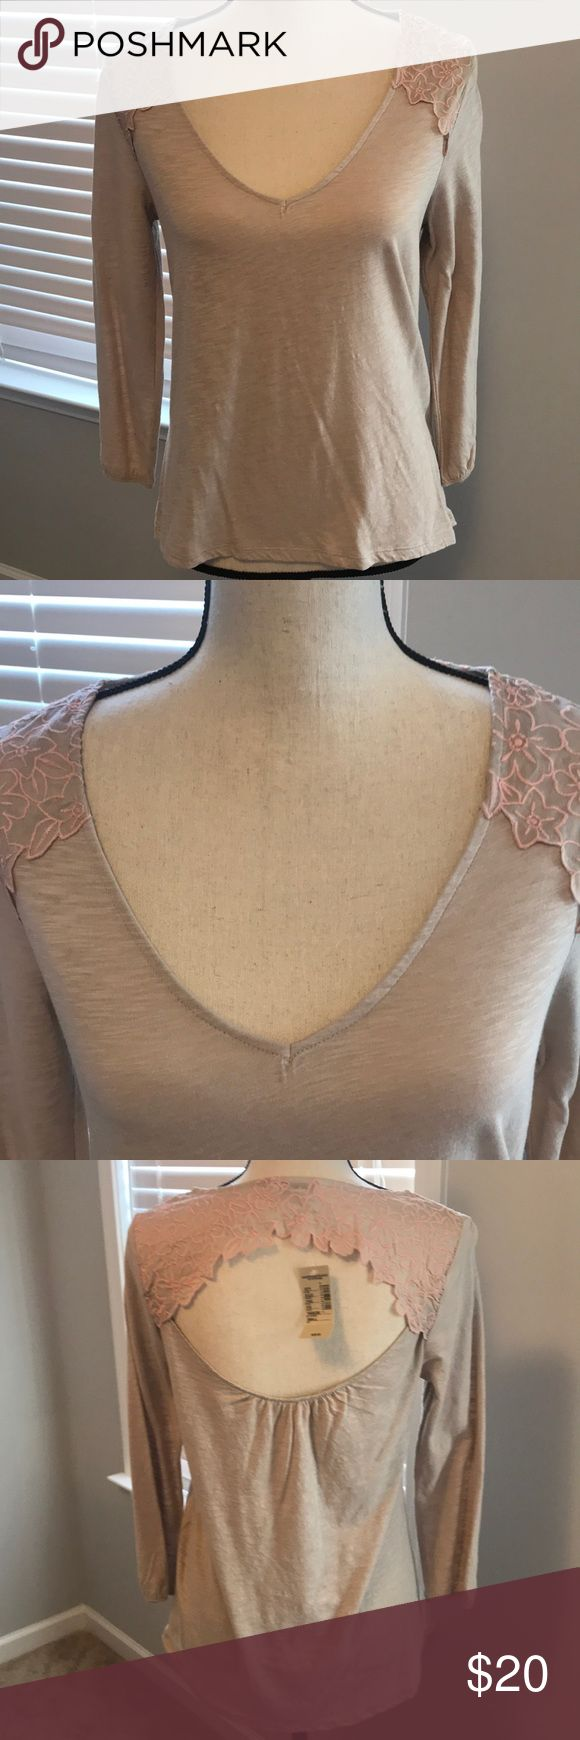 NWT AW cut out back 3/4 shirt 3/4 tan shirt with light pink flowers on shoulders and around back cut out of shirt. Never been worn! Very cute American Eagle Outfitters Tops